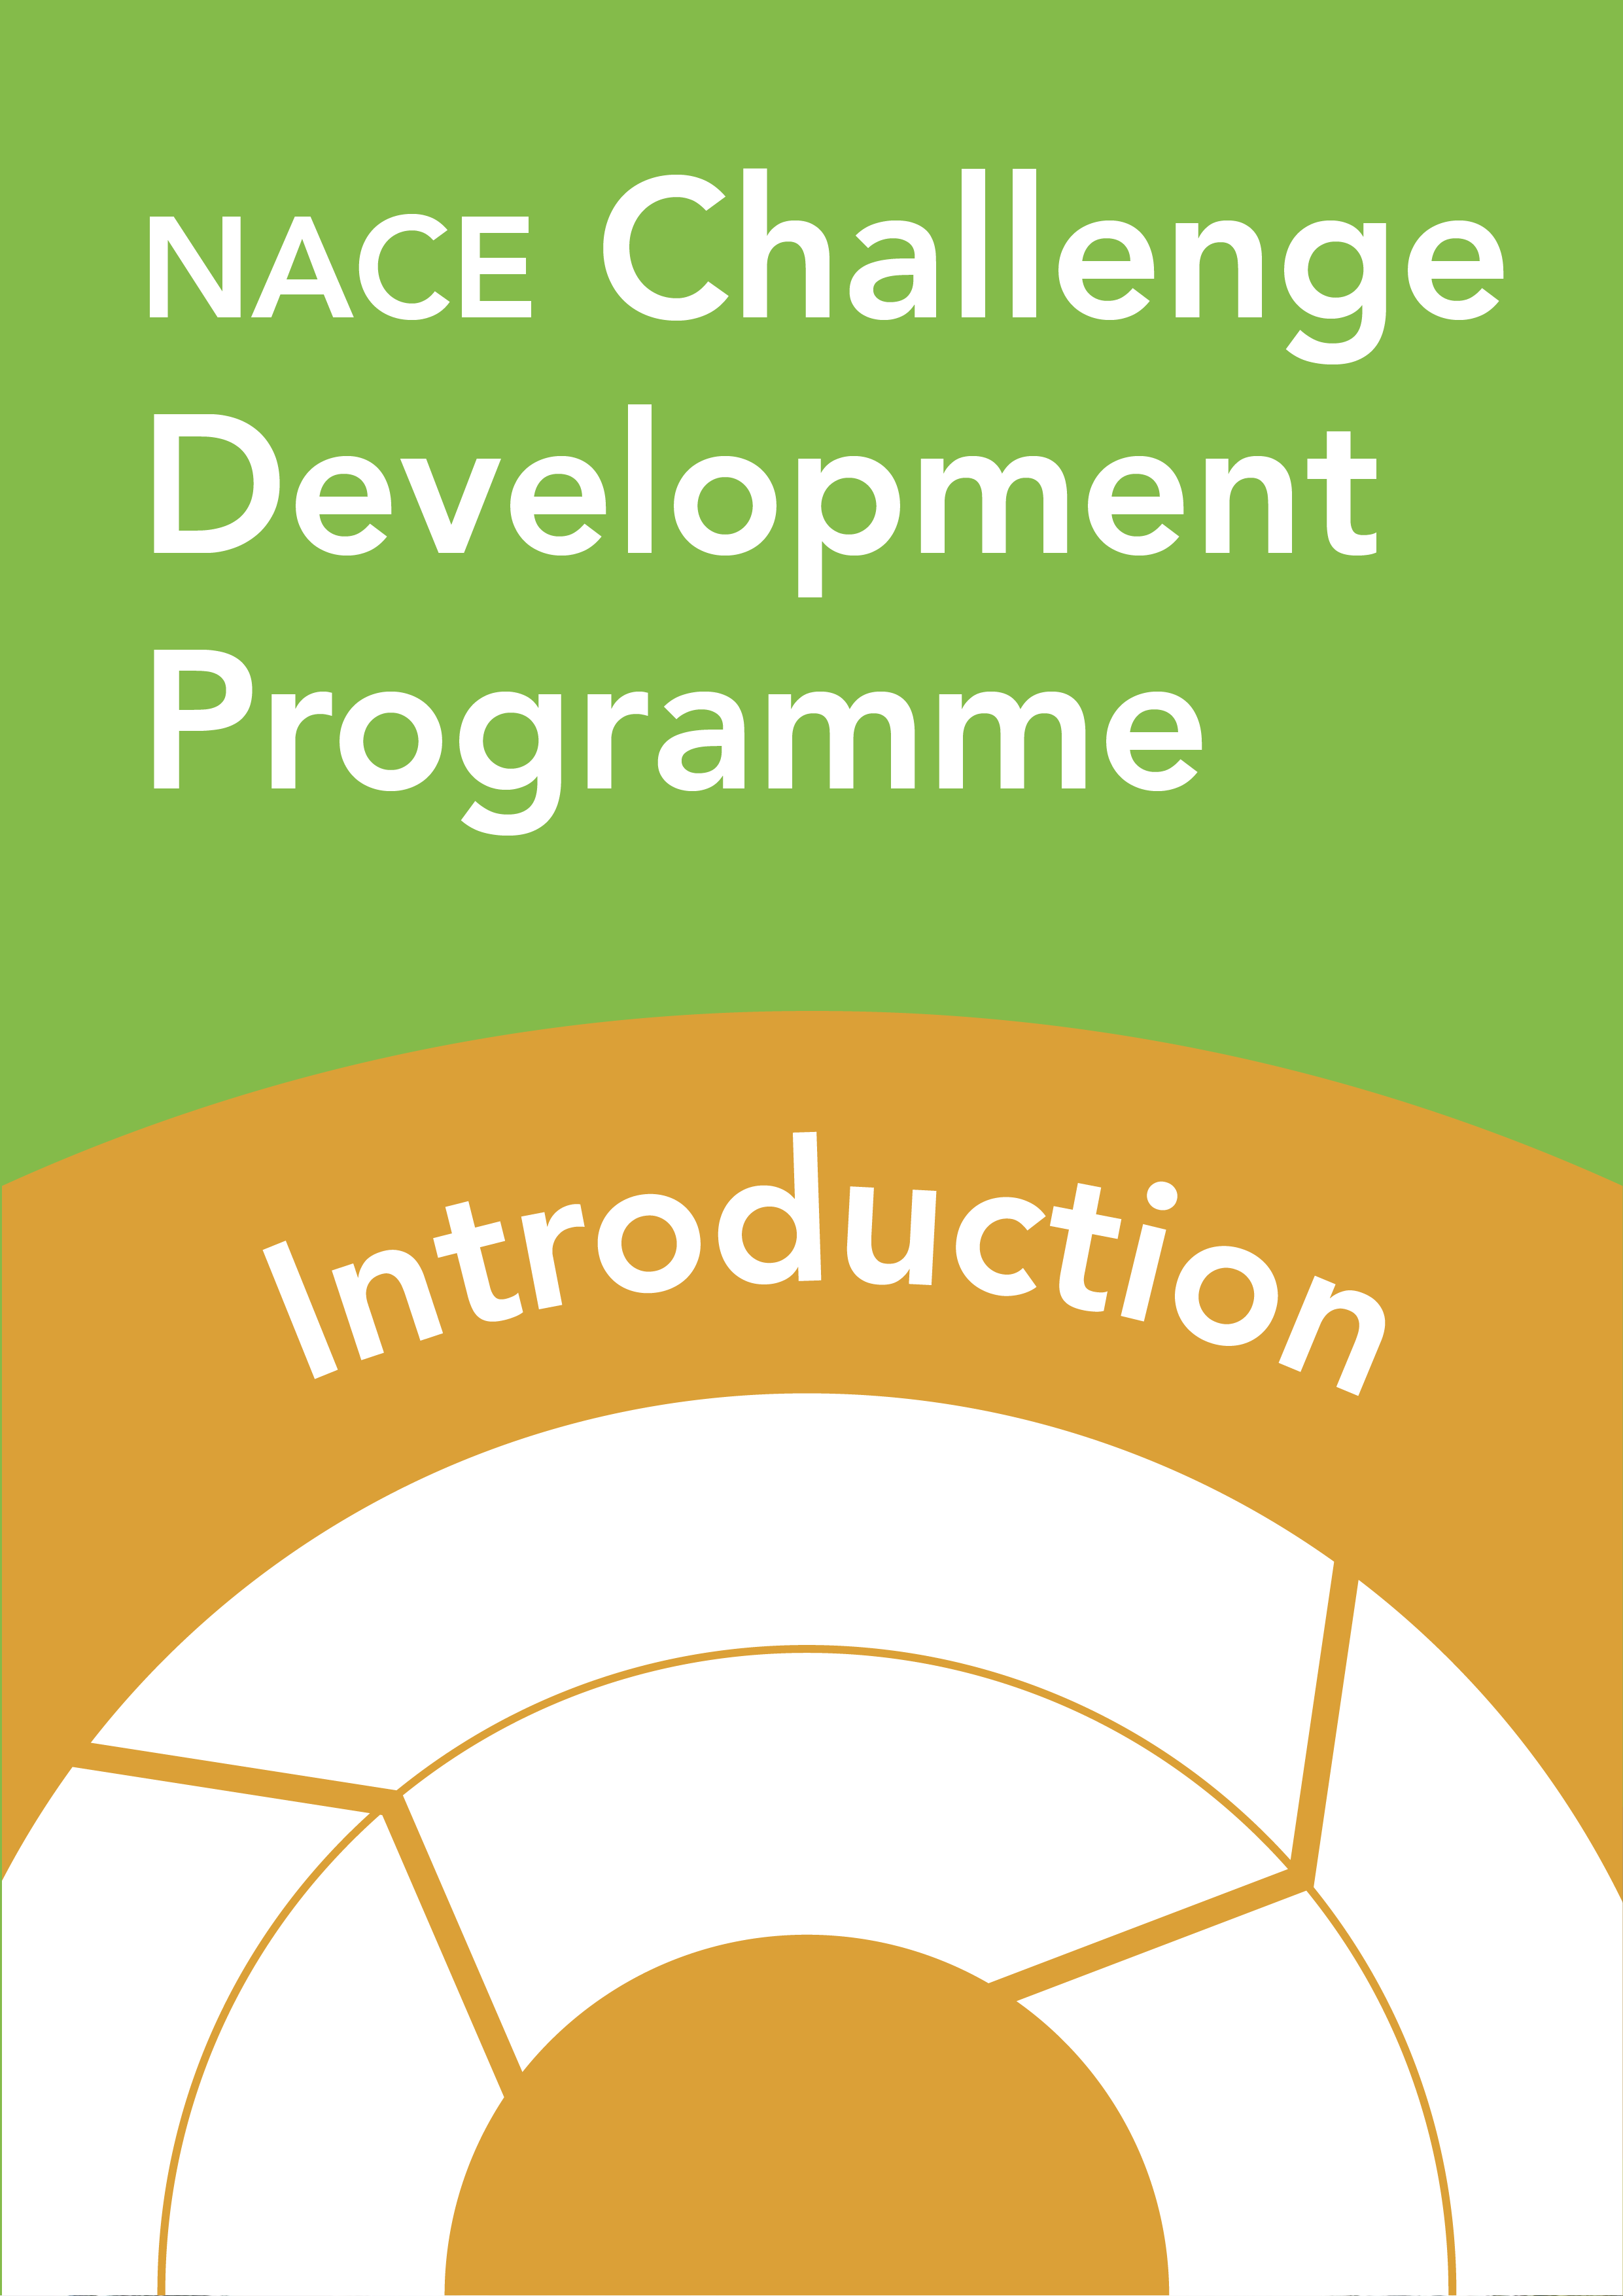 Challenge Development Programme - Introduction